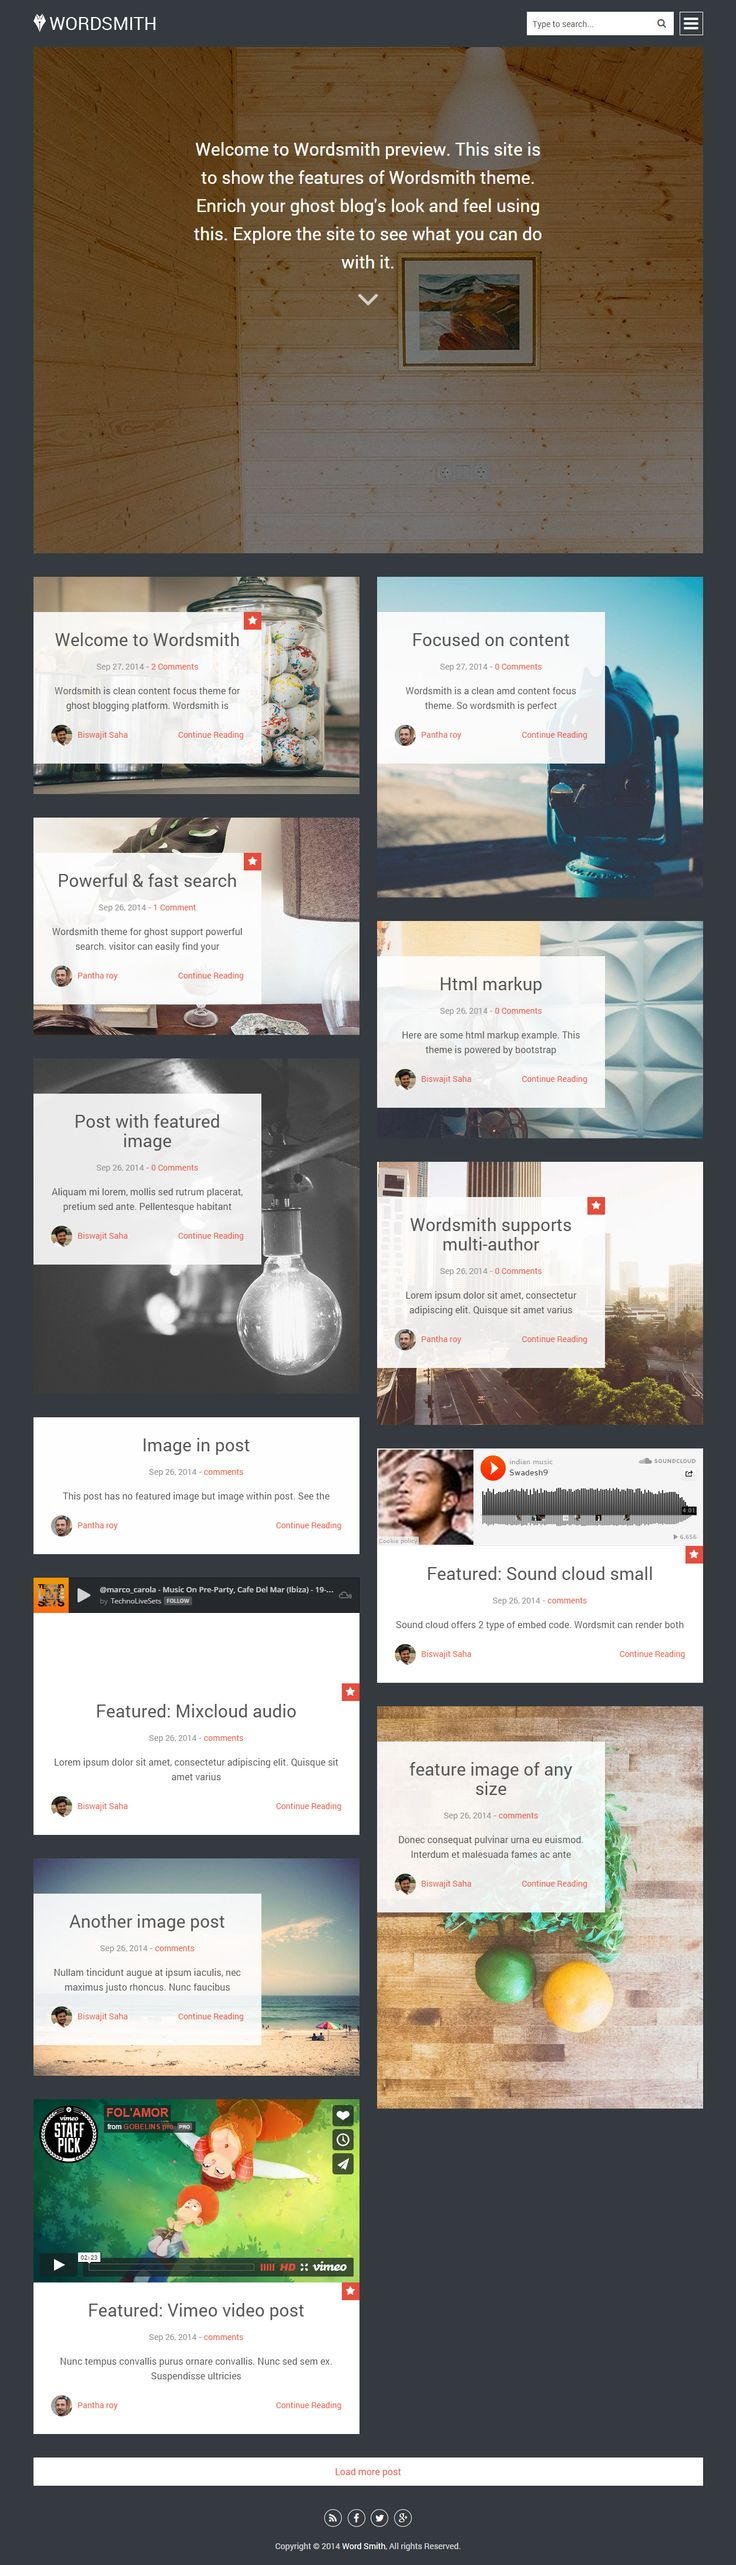 Wordsmith is Premium full Responsive Ghost Blog Theme. Flat Design. Masonry layout. Retina Ready. Bootstrap Framework. http://www.responsivemiracle.com/cms/wordsmith-premium-responsive-masonry-style-ghost-theme/